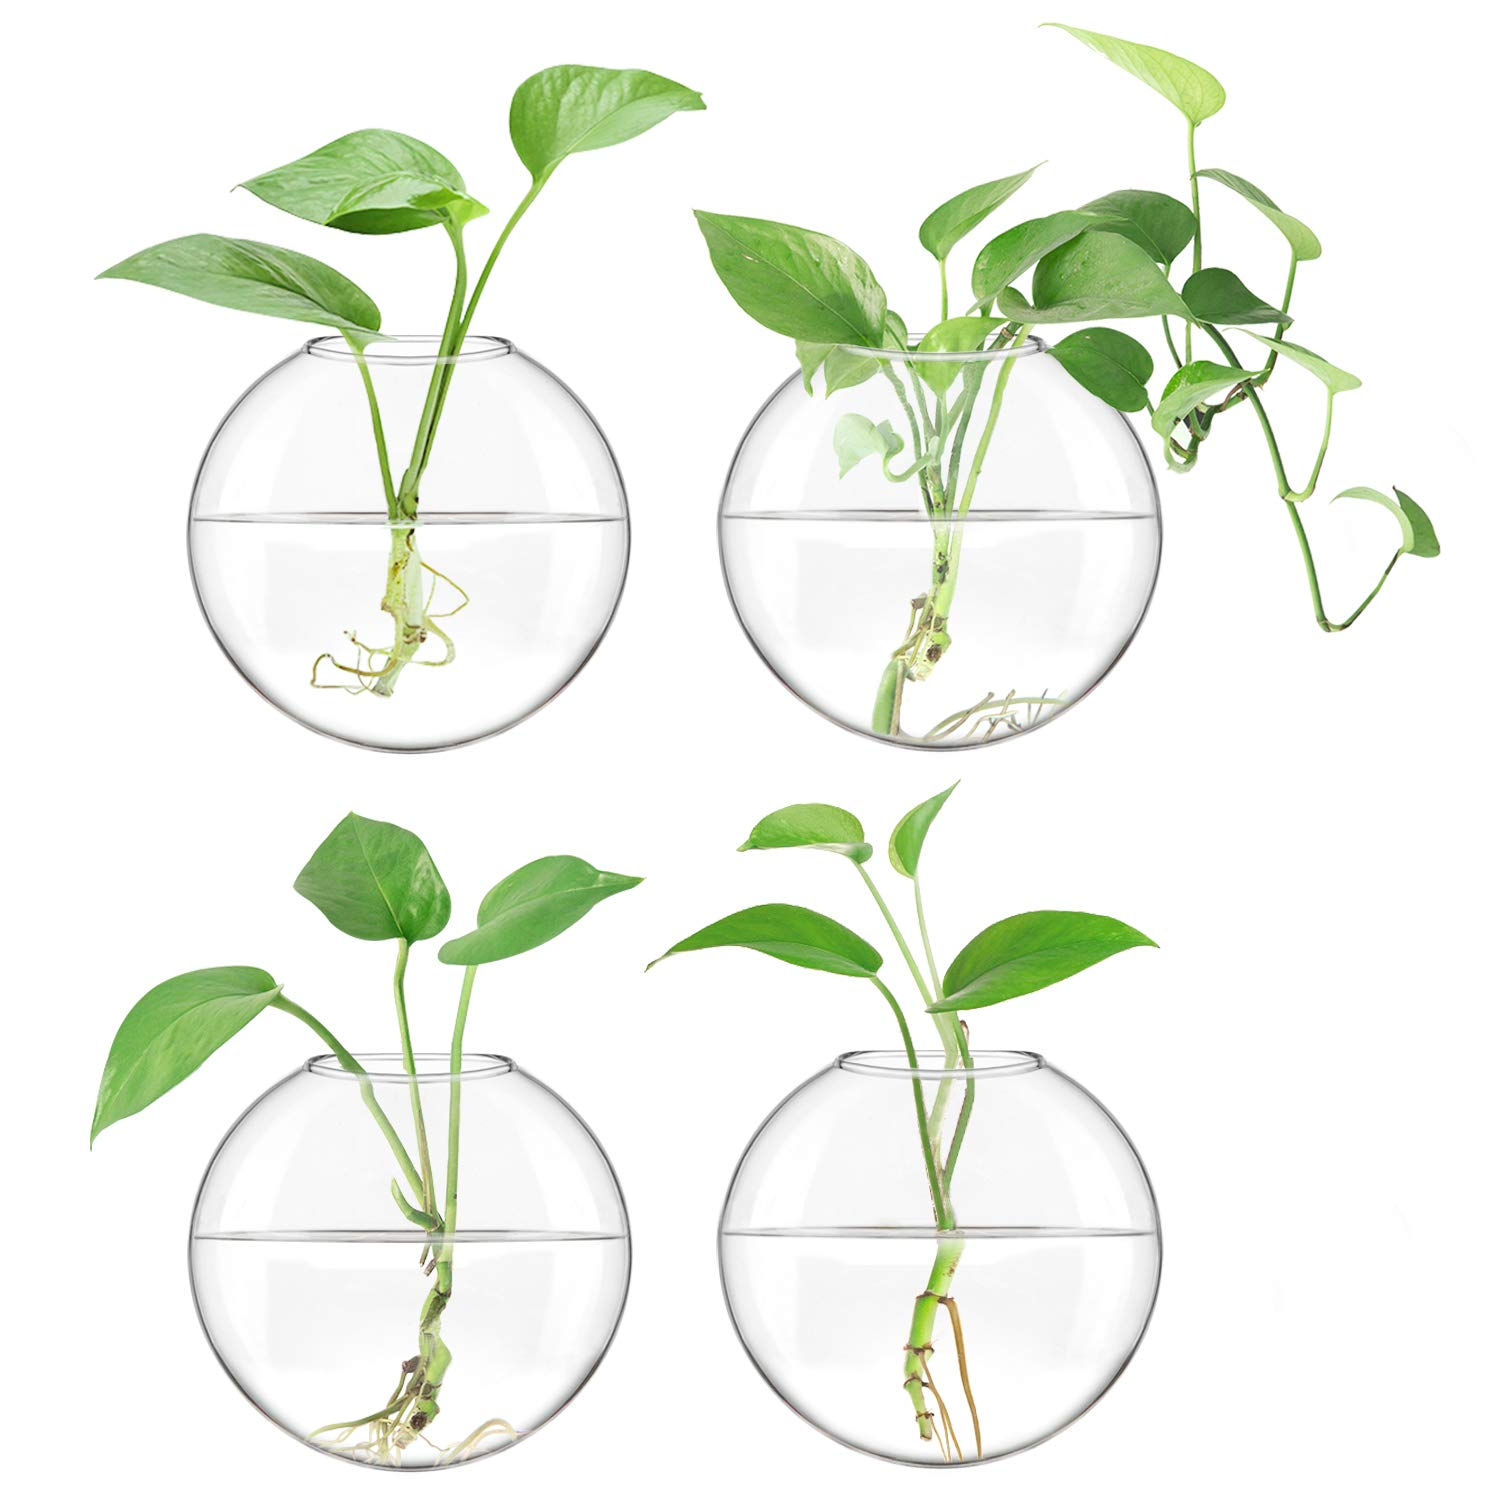 Mkono 4 Pack Glass Wall Hanging Planter Wall Mounted Plant Vase Indoor Air Plants Terrariums for Home Office Living Room Decor, Oblate